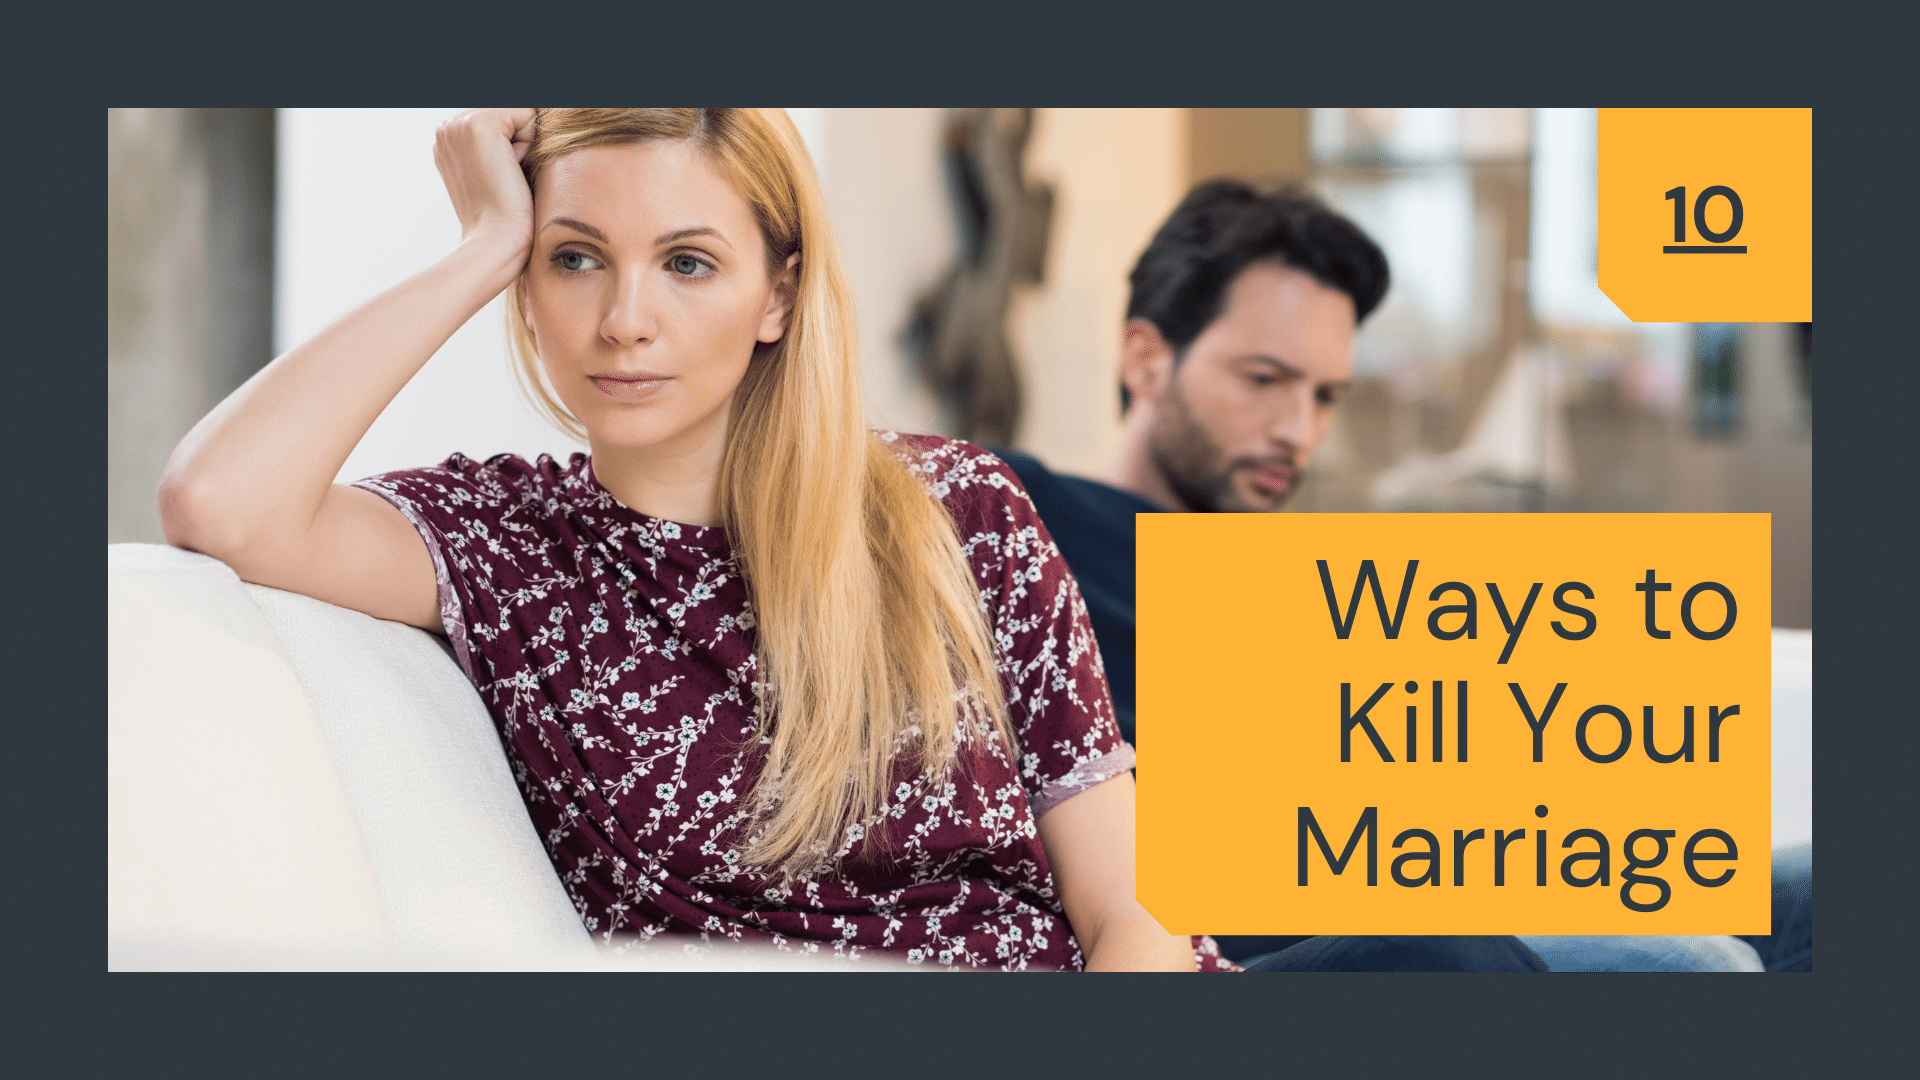 10 Ways to Kill Your Marriage